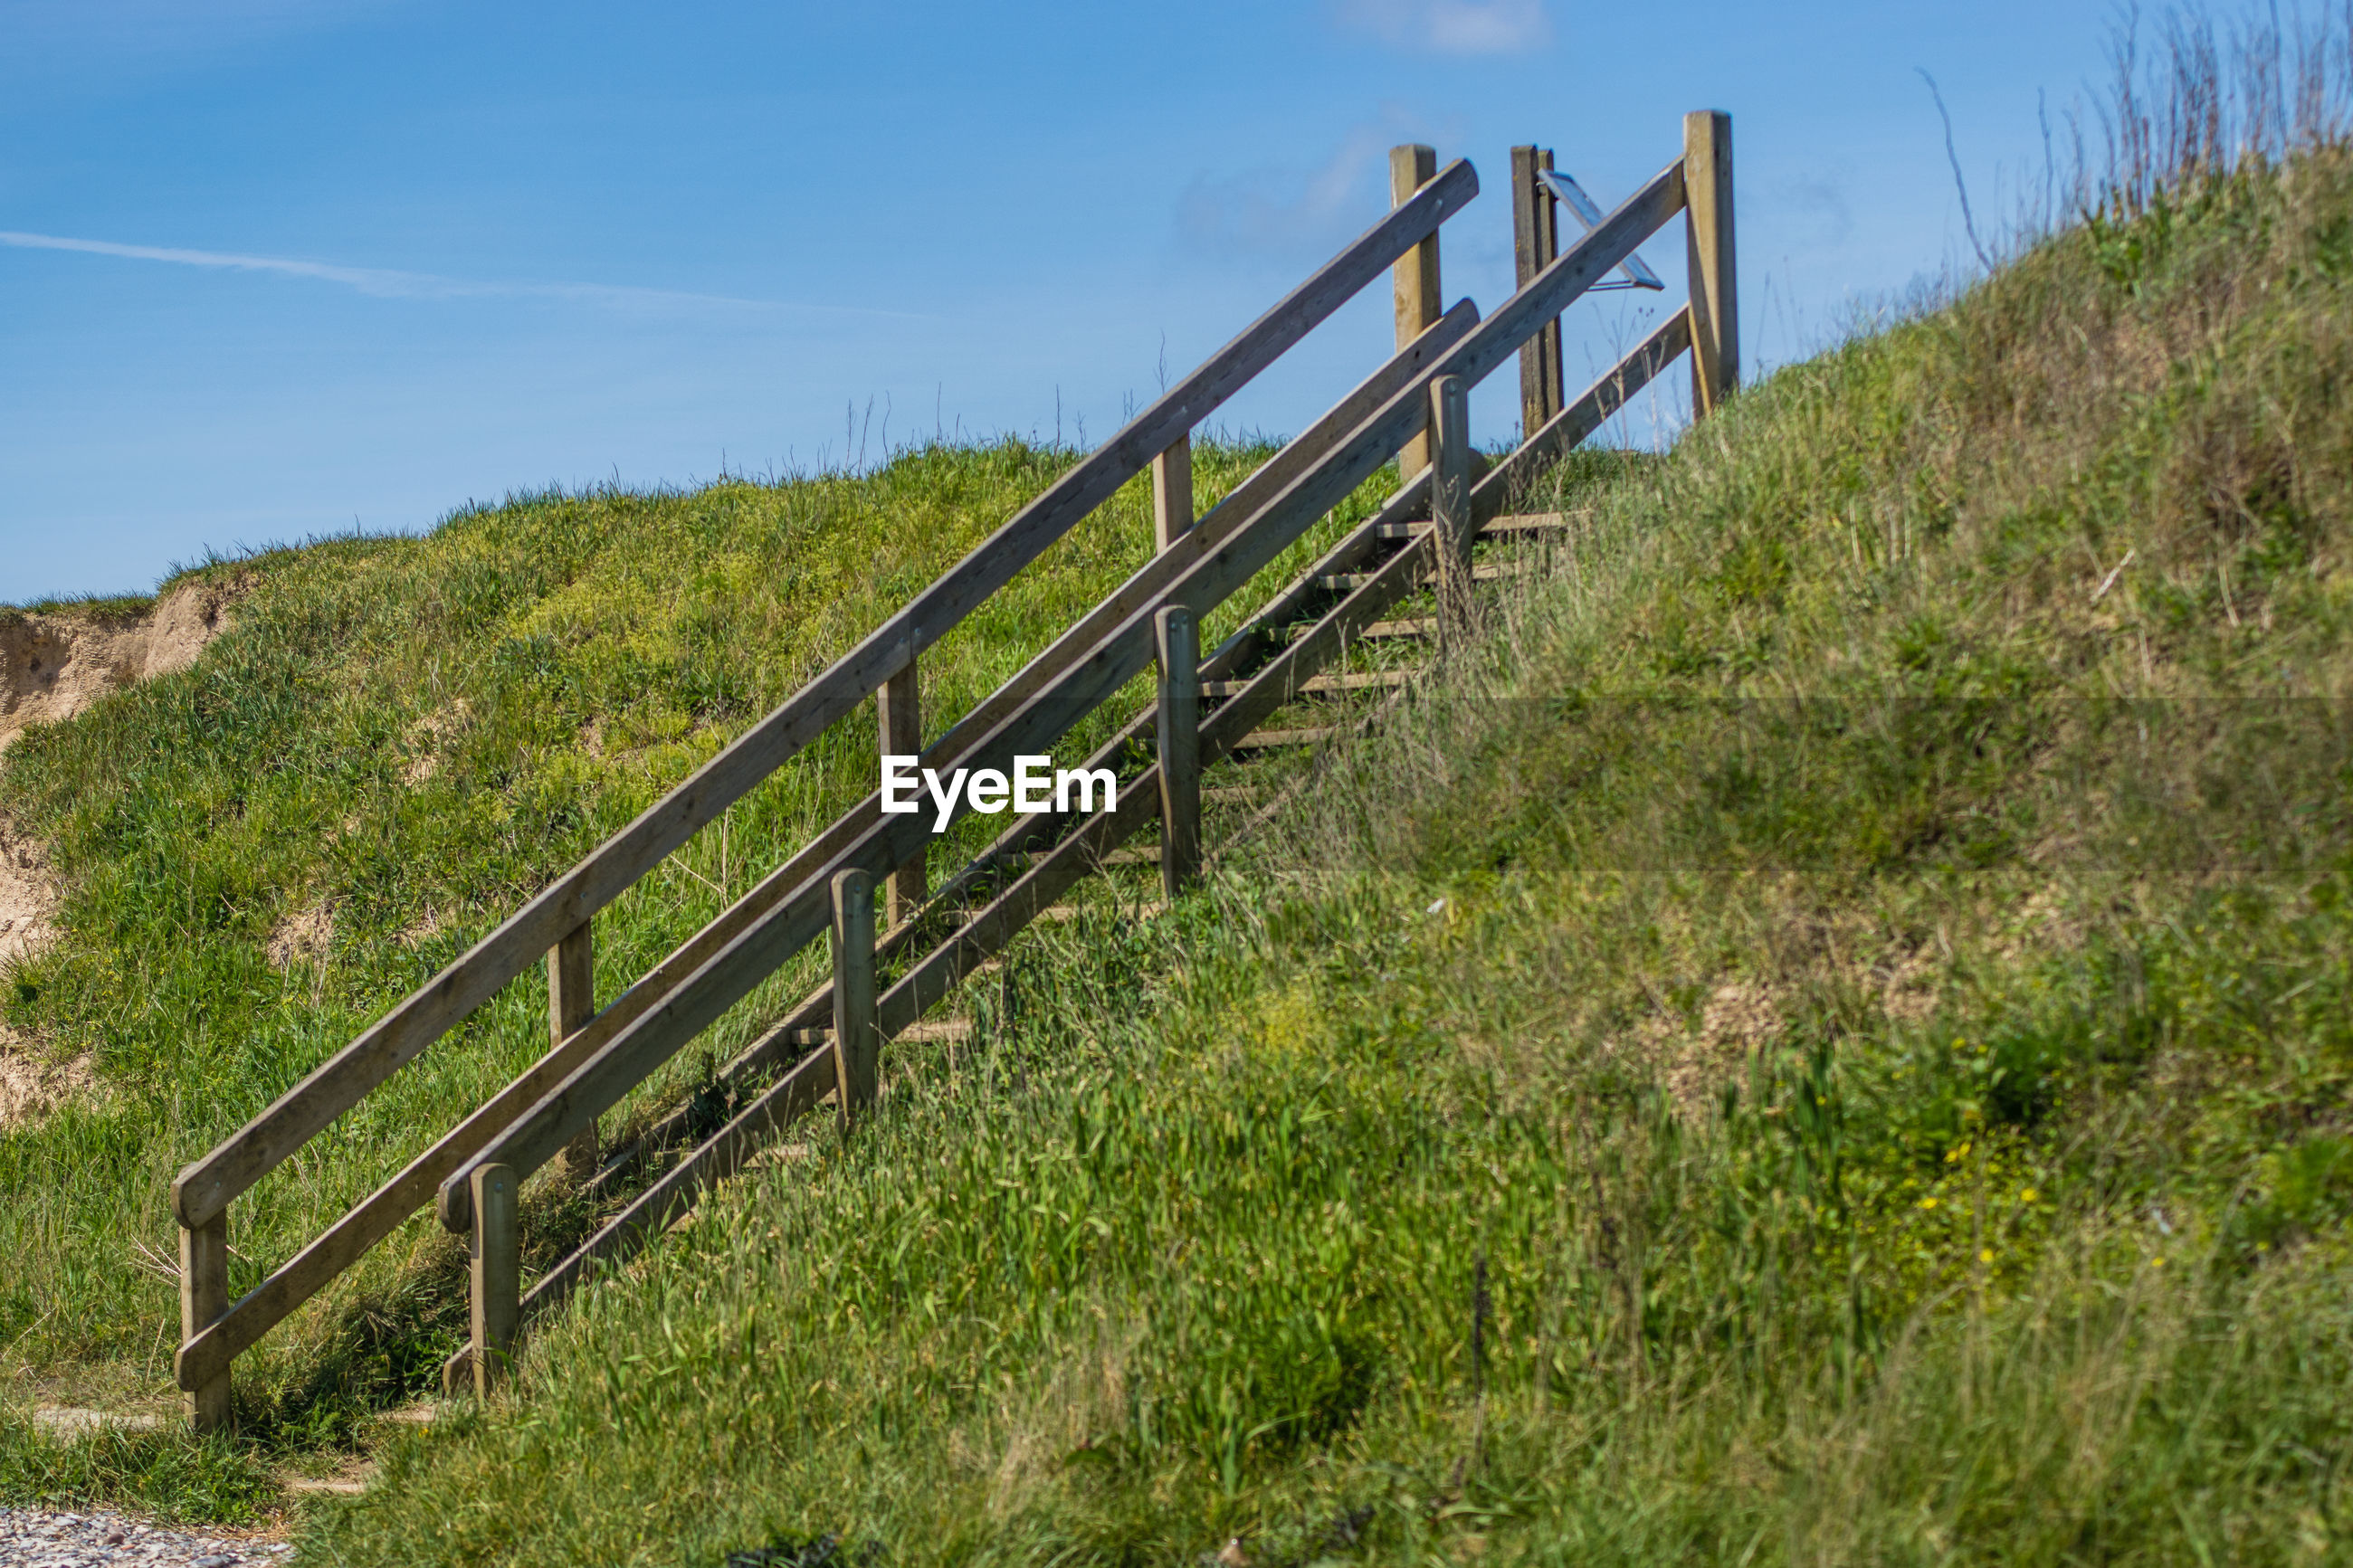 STEPS LEADING TO GRASS AGAINST SKY